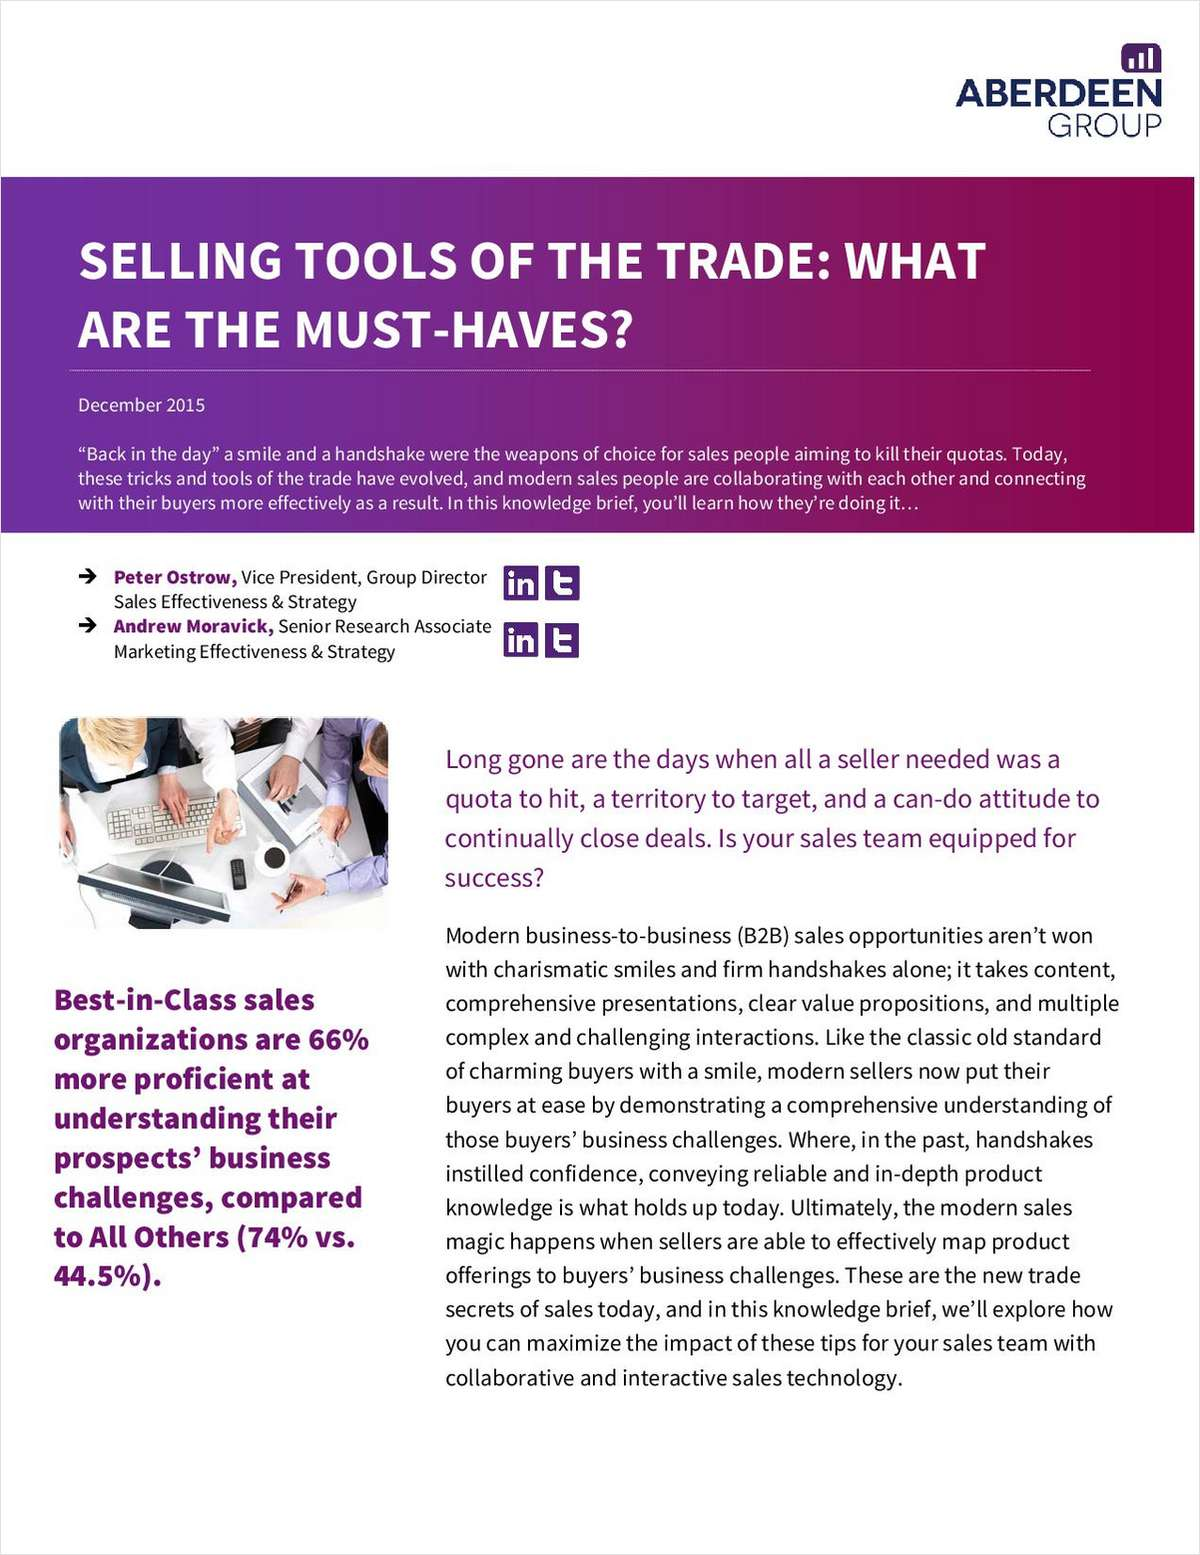 The Must-Haves of Selling Tools